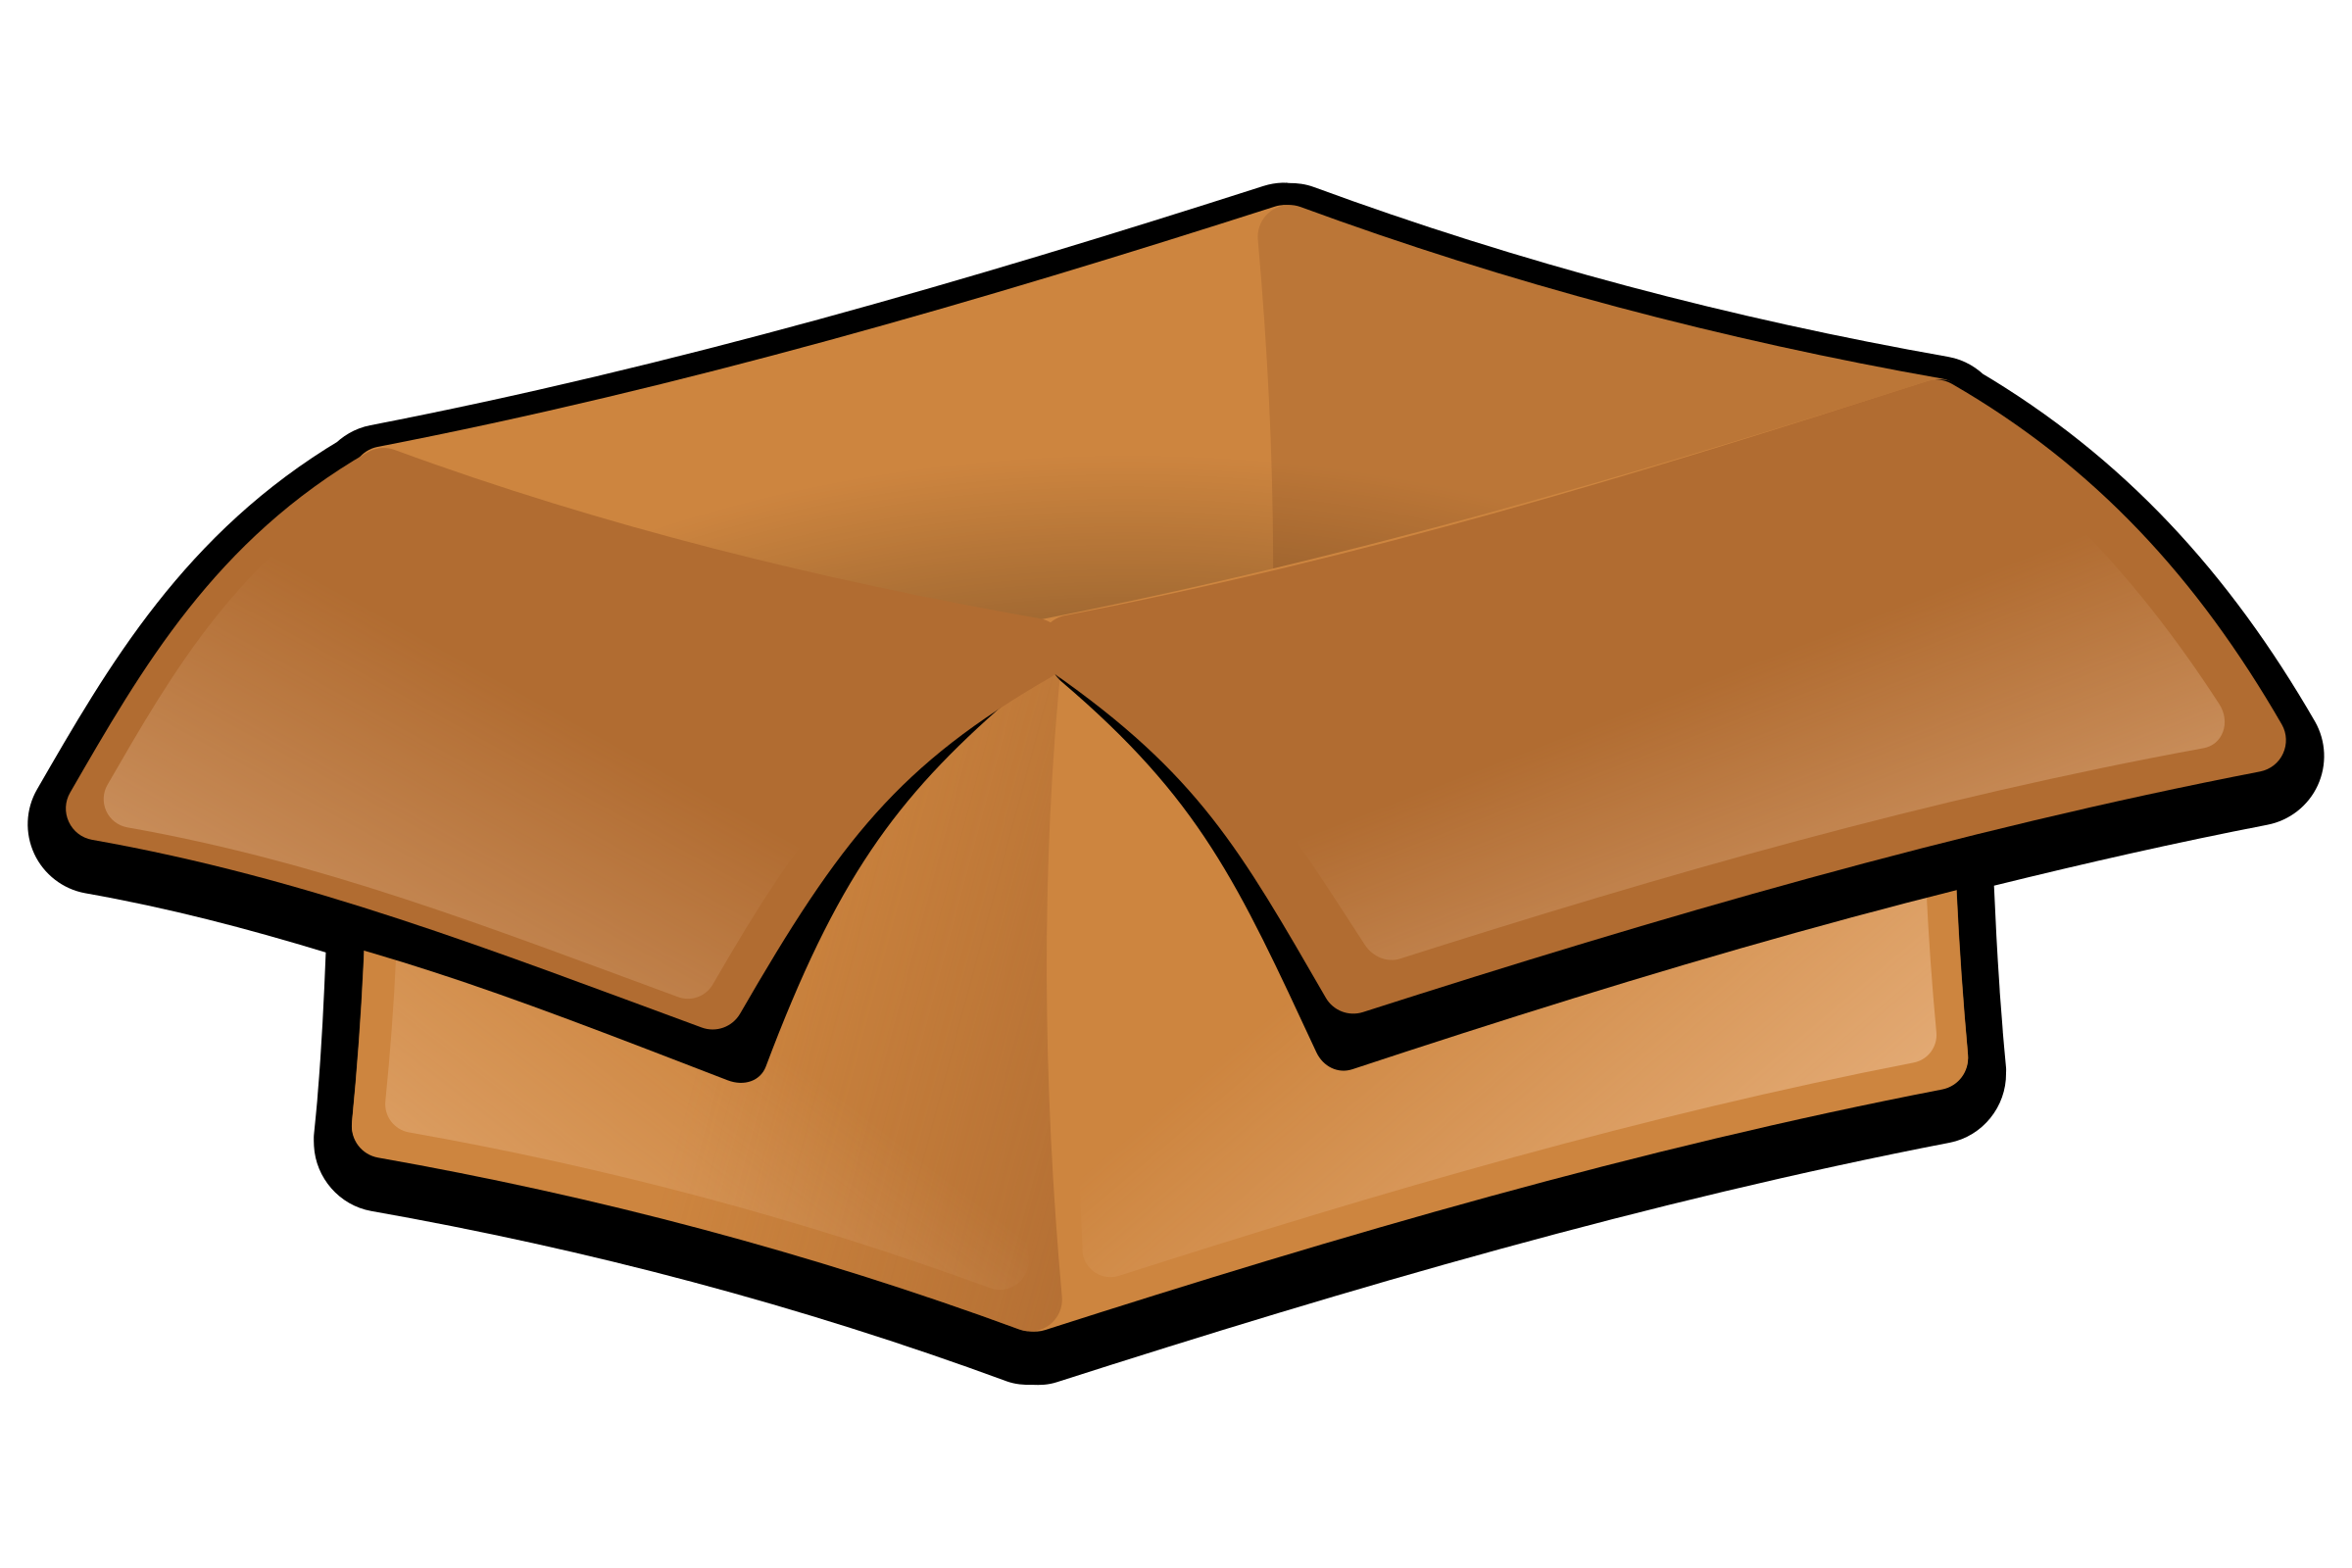 Open Box by jonata